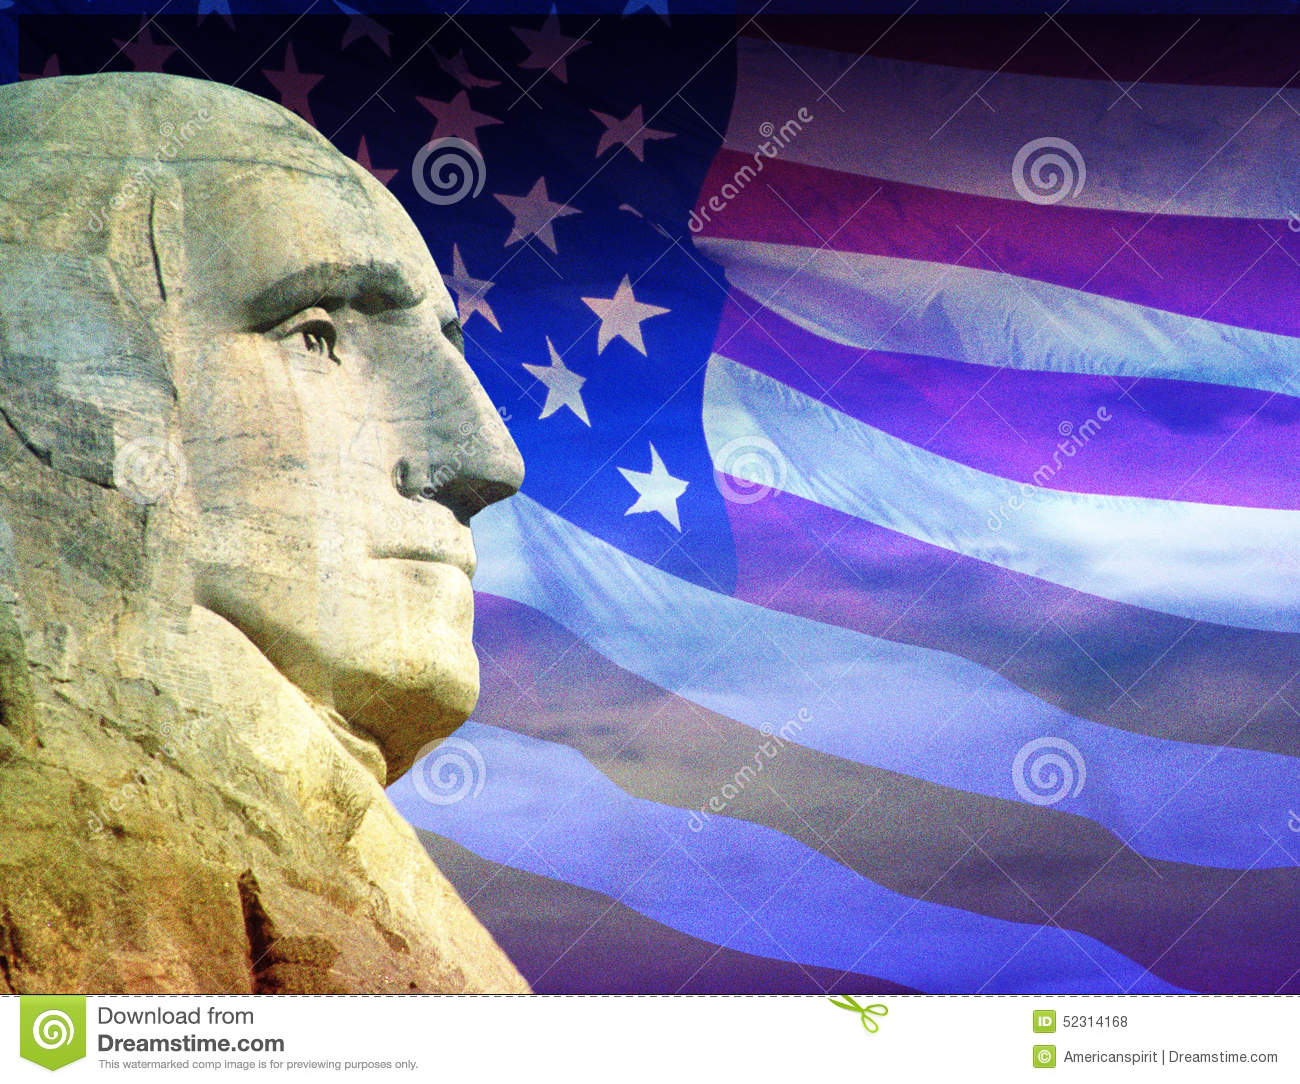 Photo montage: George Washington and American flag